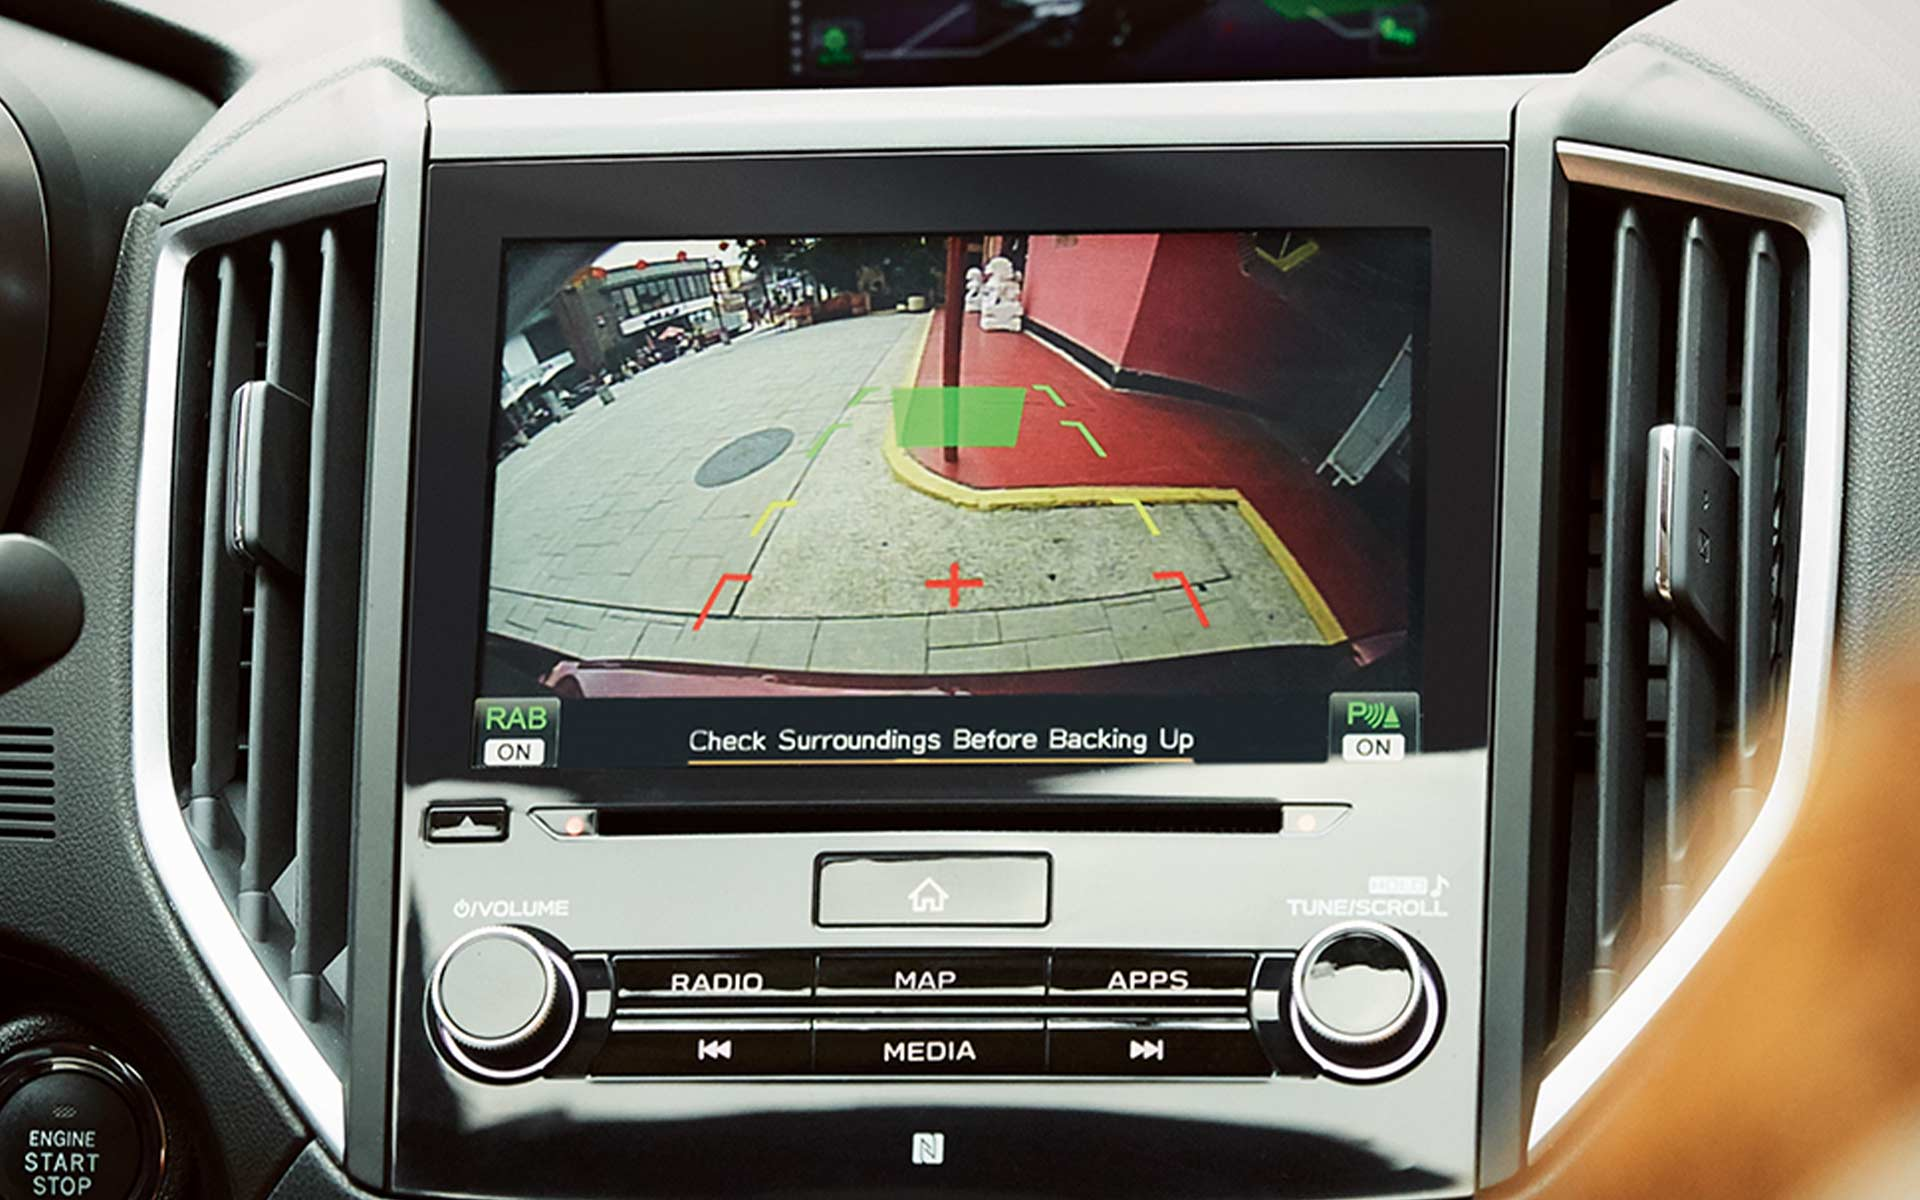 A close-up of the view from the Rear-Vision Camera in the 2020 Impreza.